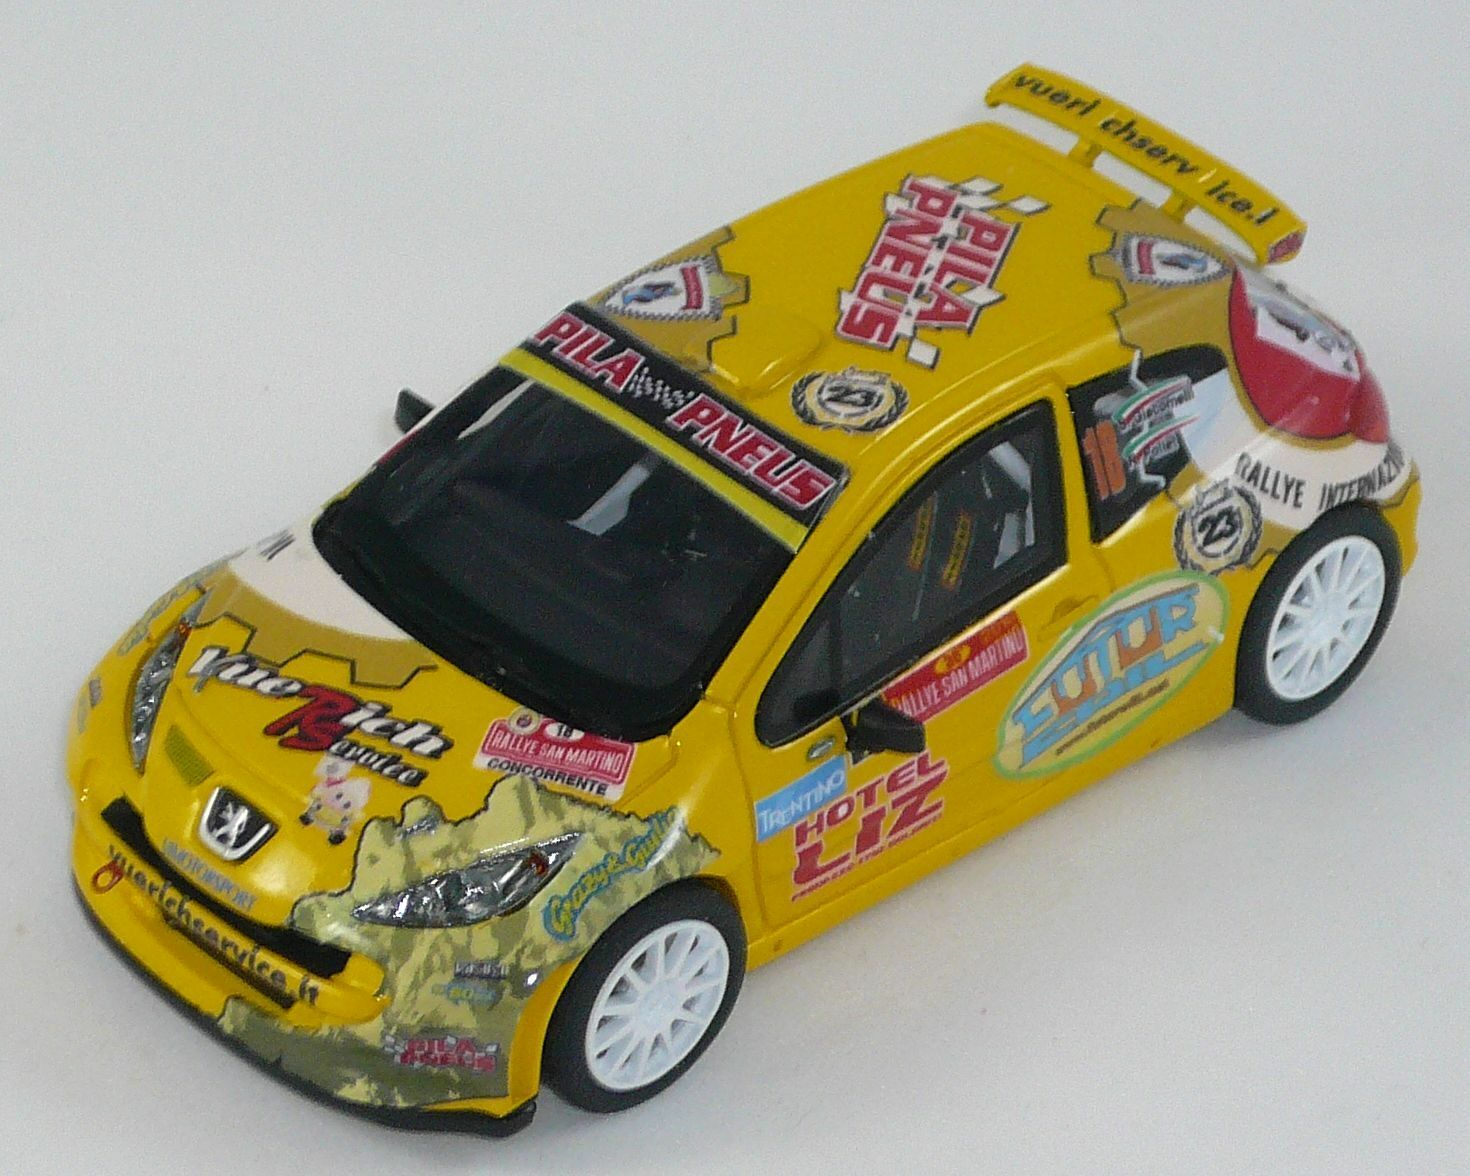 Peugeot 207 s2000 Giacomelli Rally San Martino 1 43 Scale Model Car Handmade